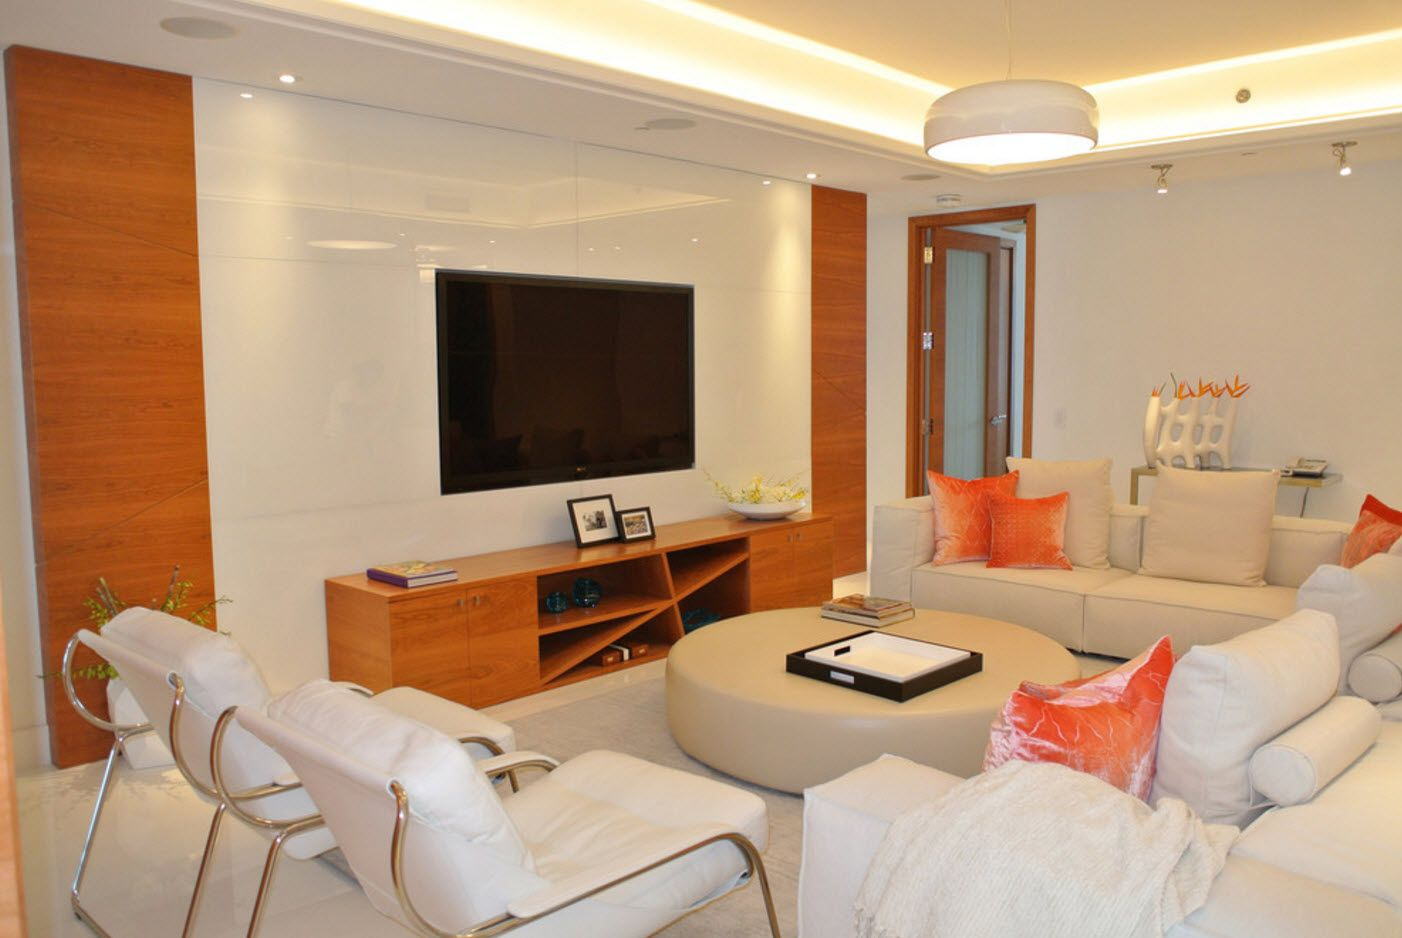 Wooden storage shelving and TV-set at the modern living with white furniture